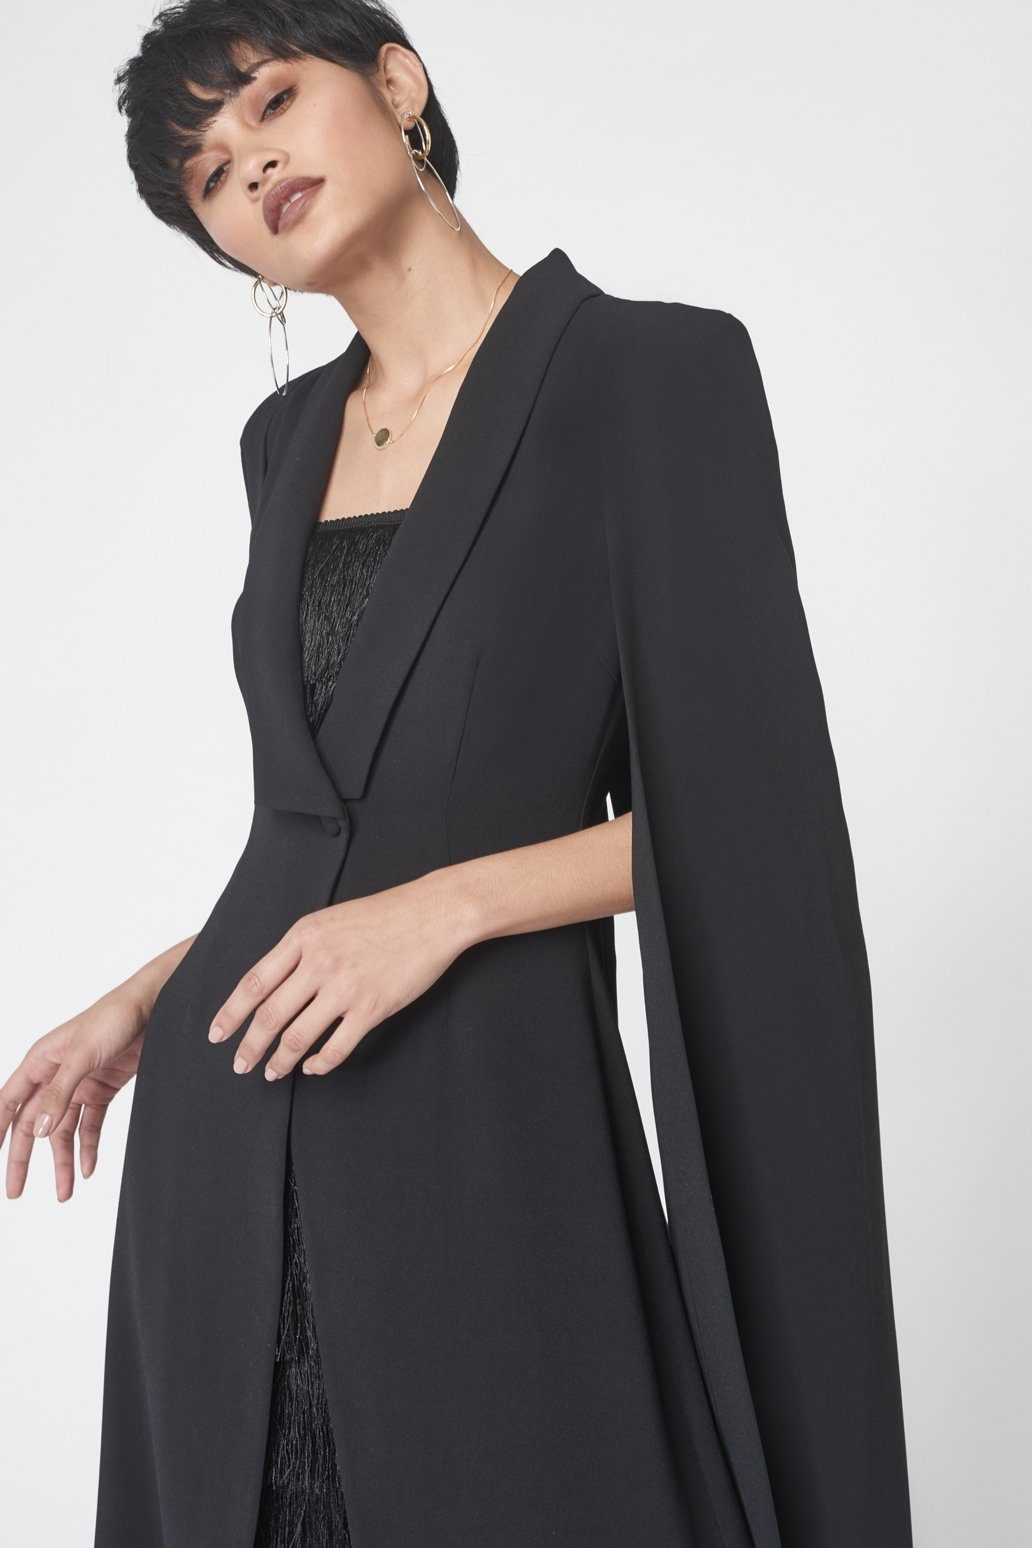 Tailored Midi Cape Blazer in Black